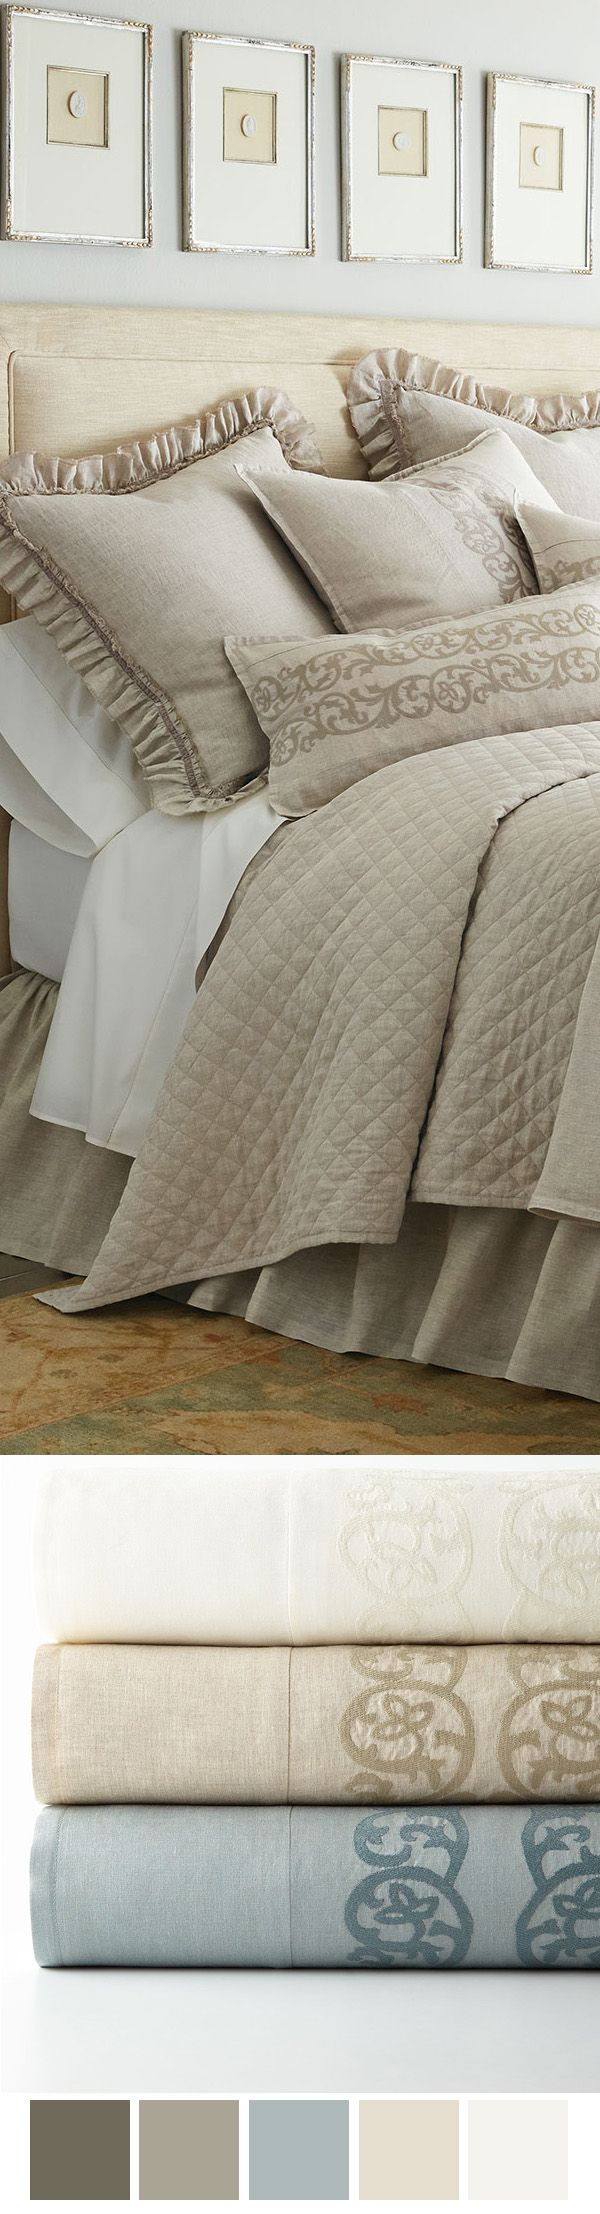 Luxury Bedding ~ Allegra